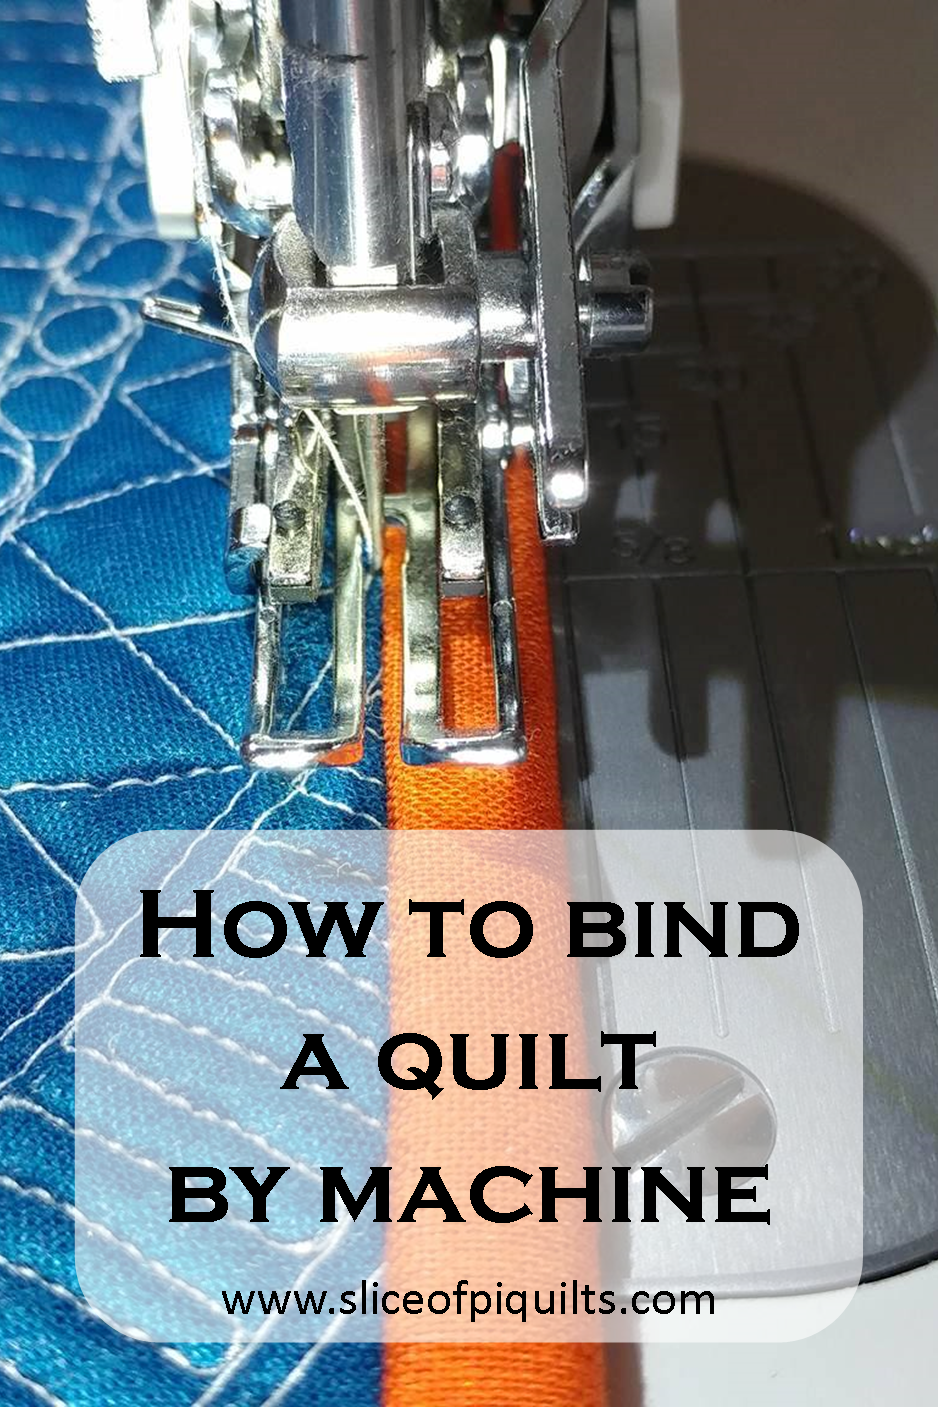 How to bind a quilt 6 simple steps youtube.